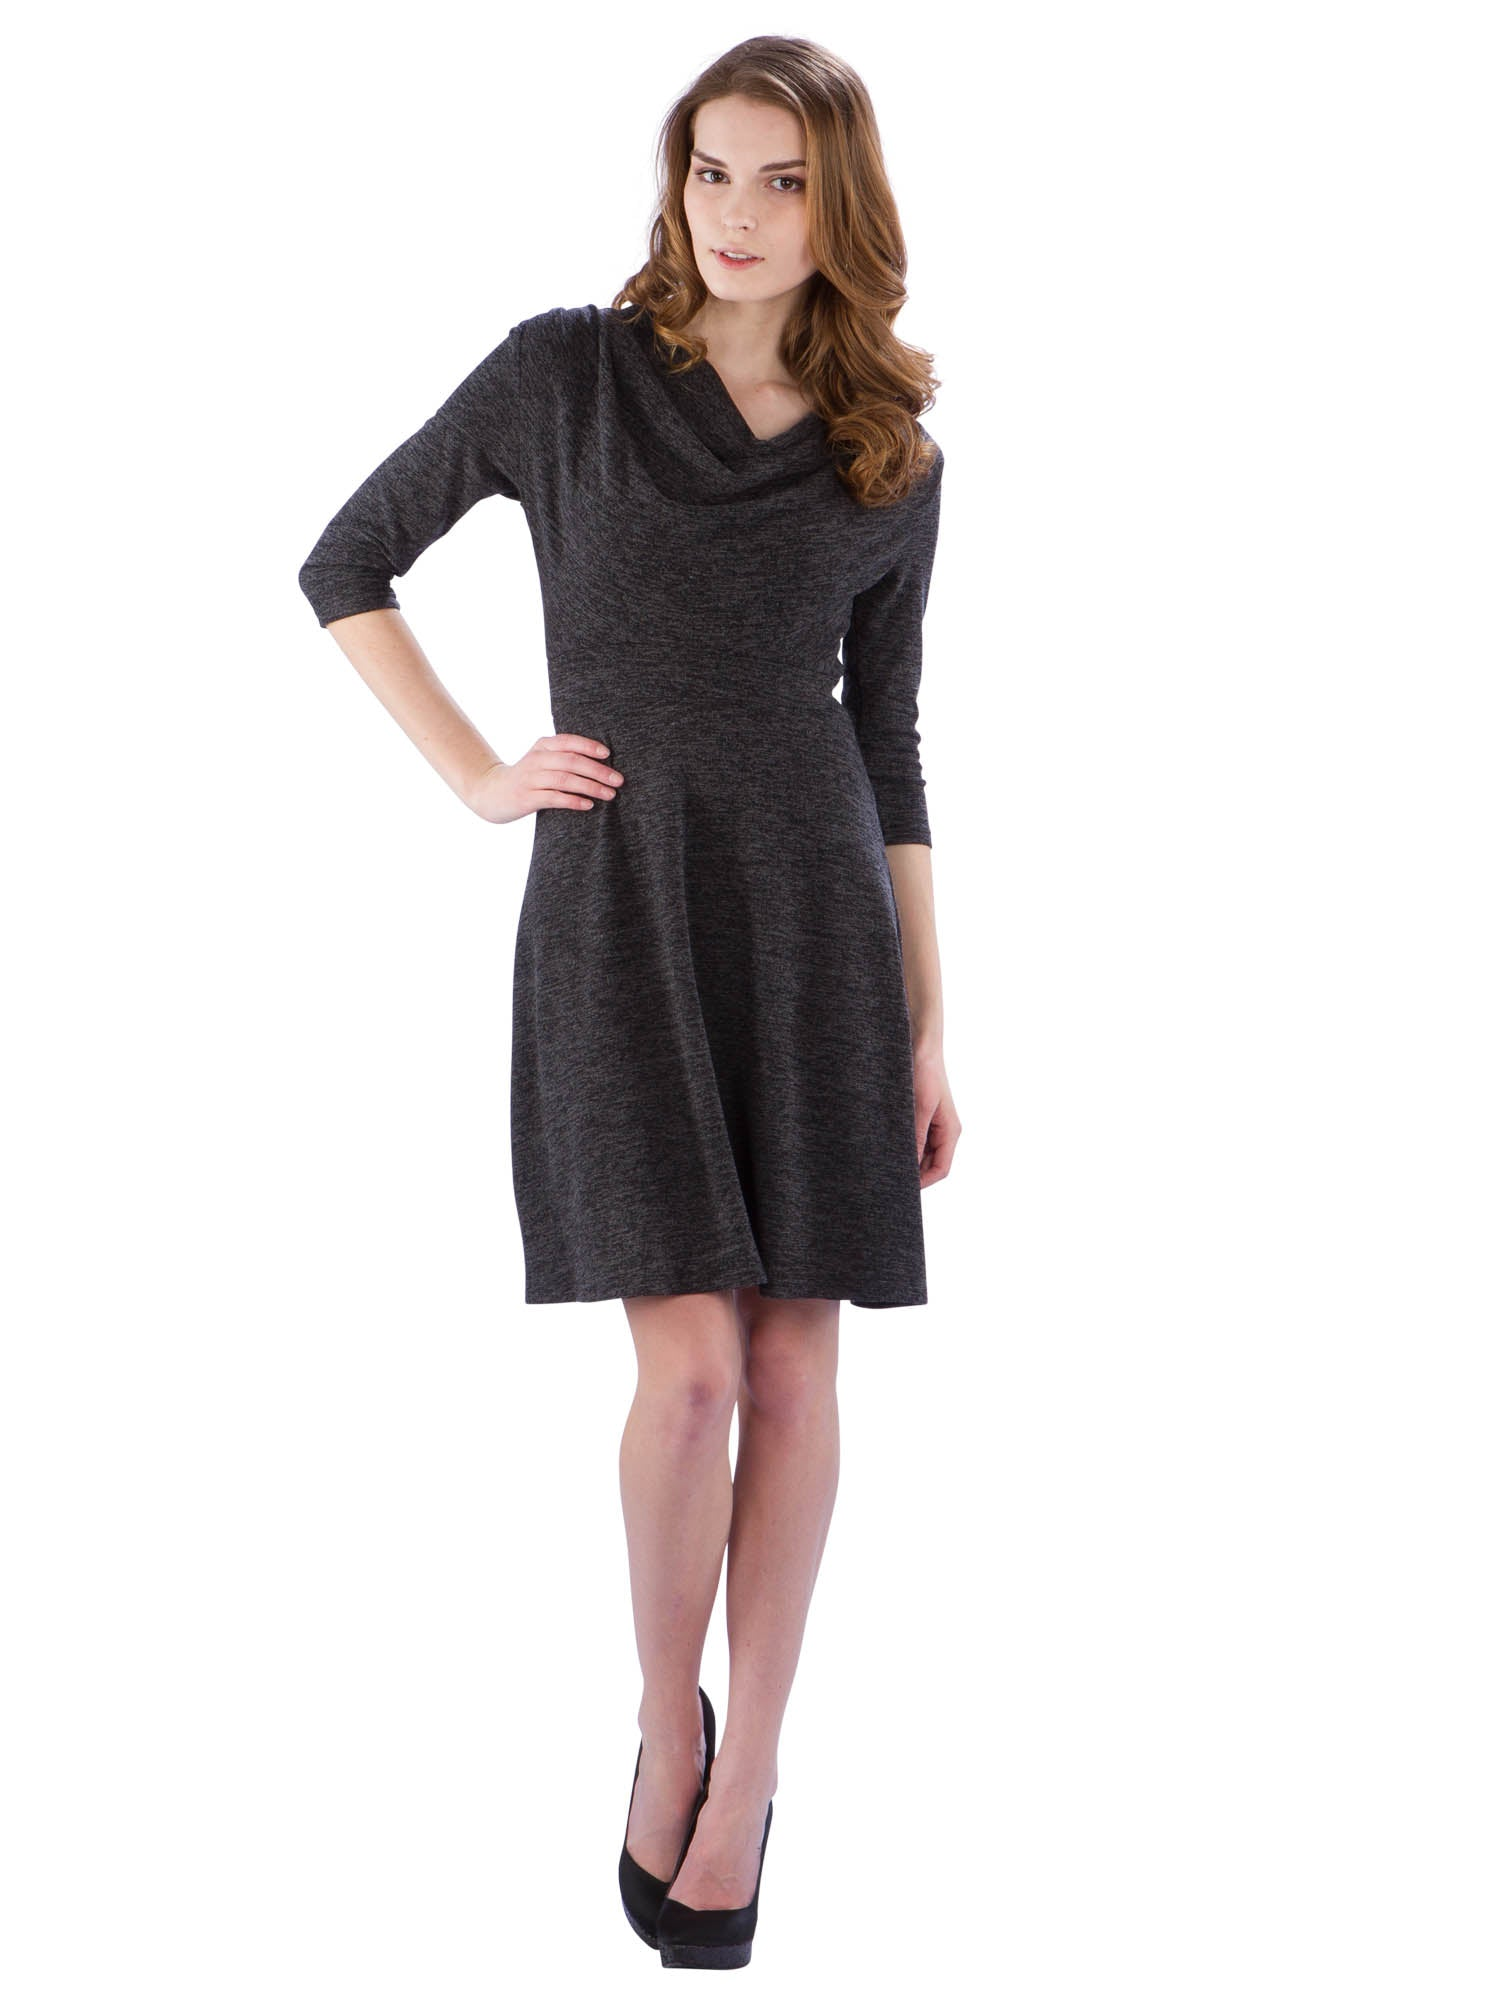 Cowl Neck Sweater Dress with 3/4 Sleeves